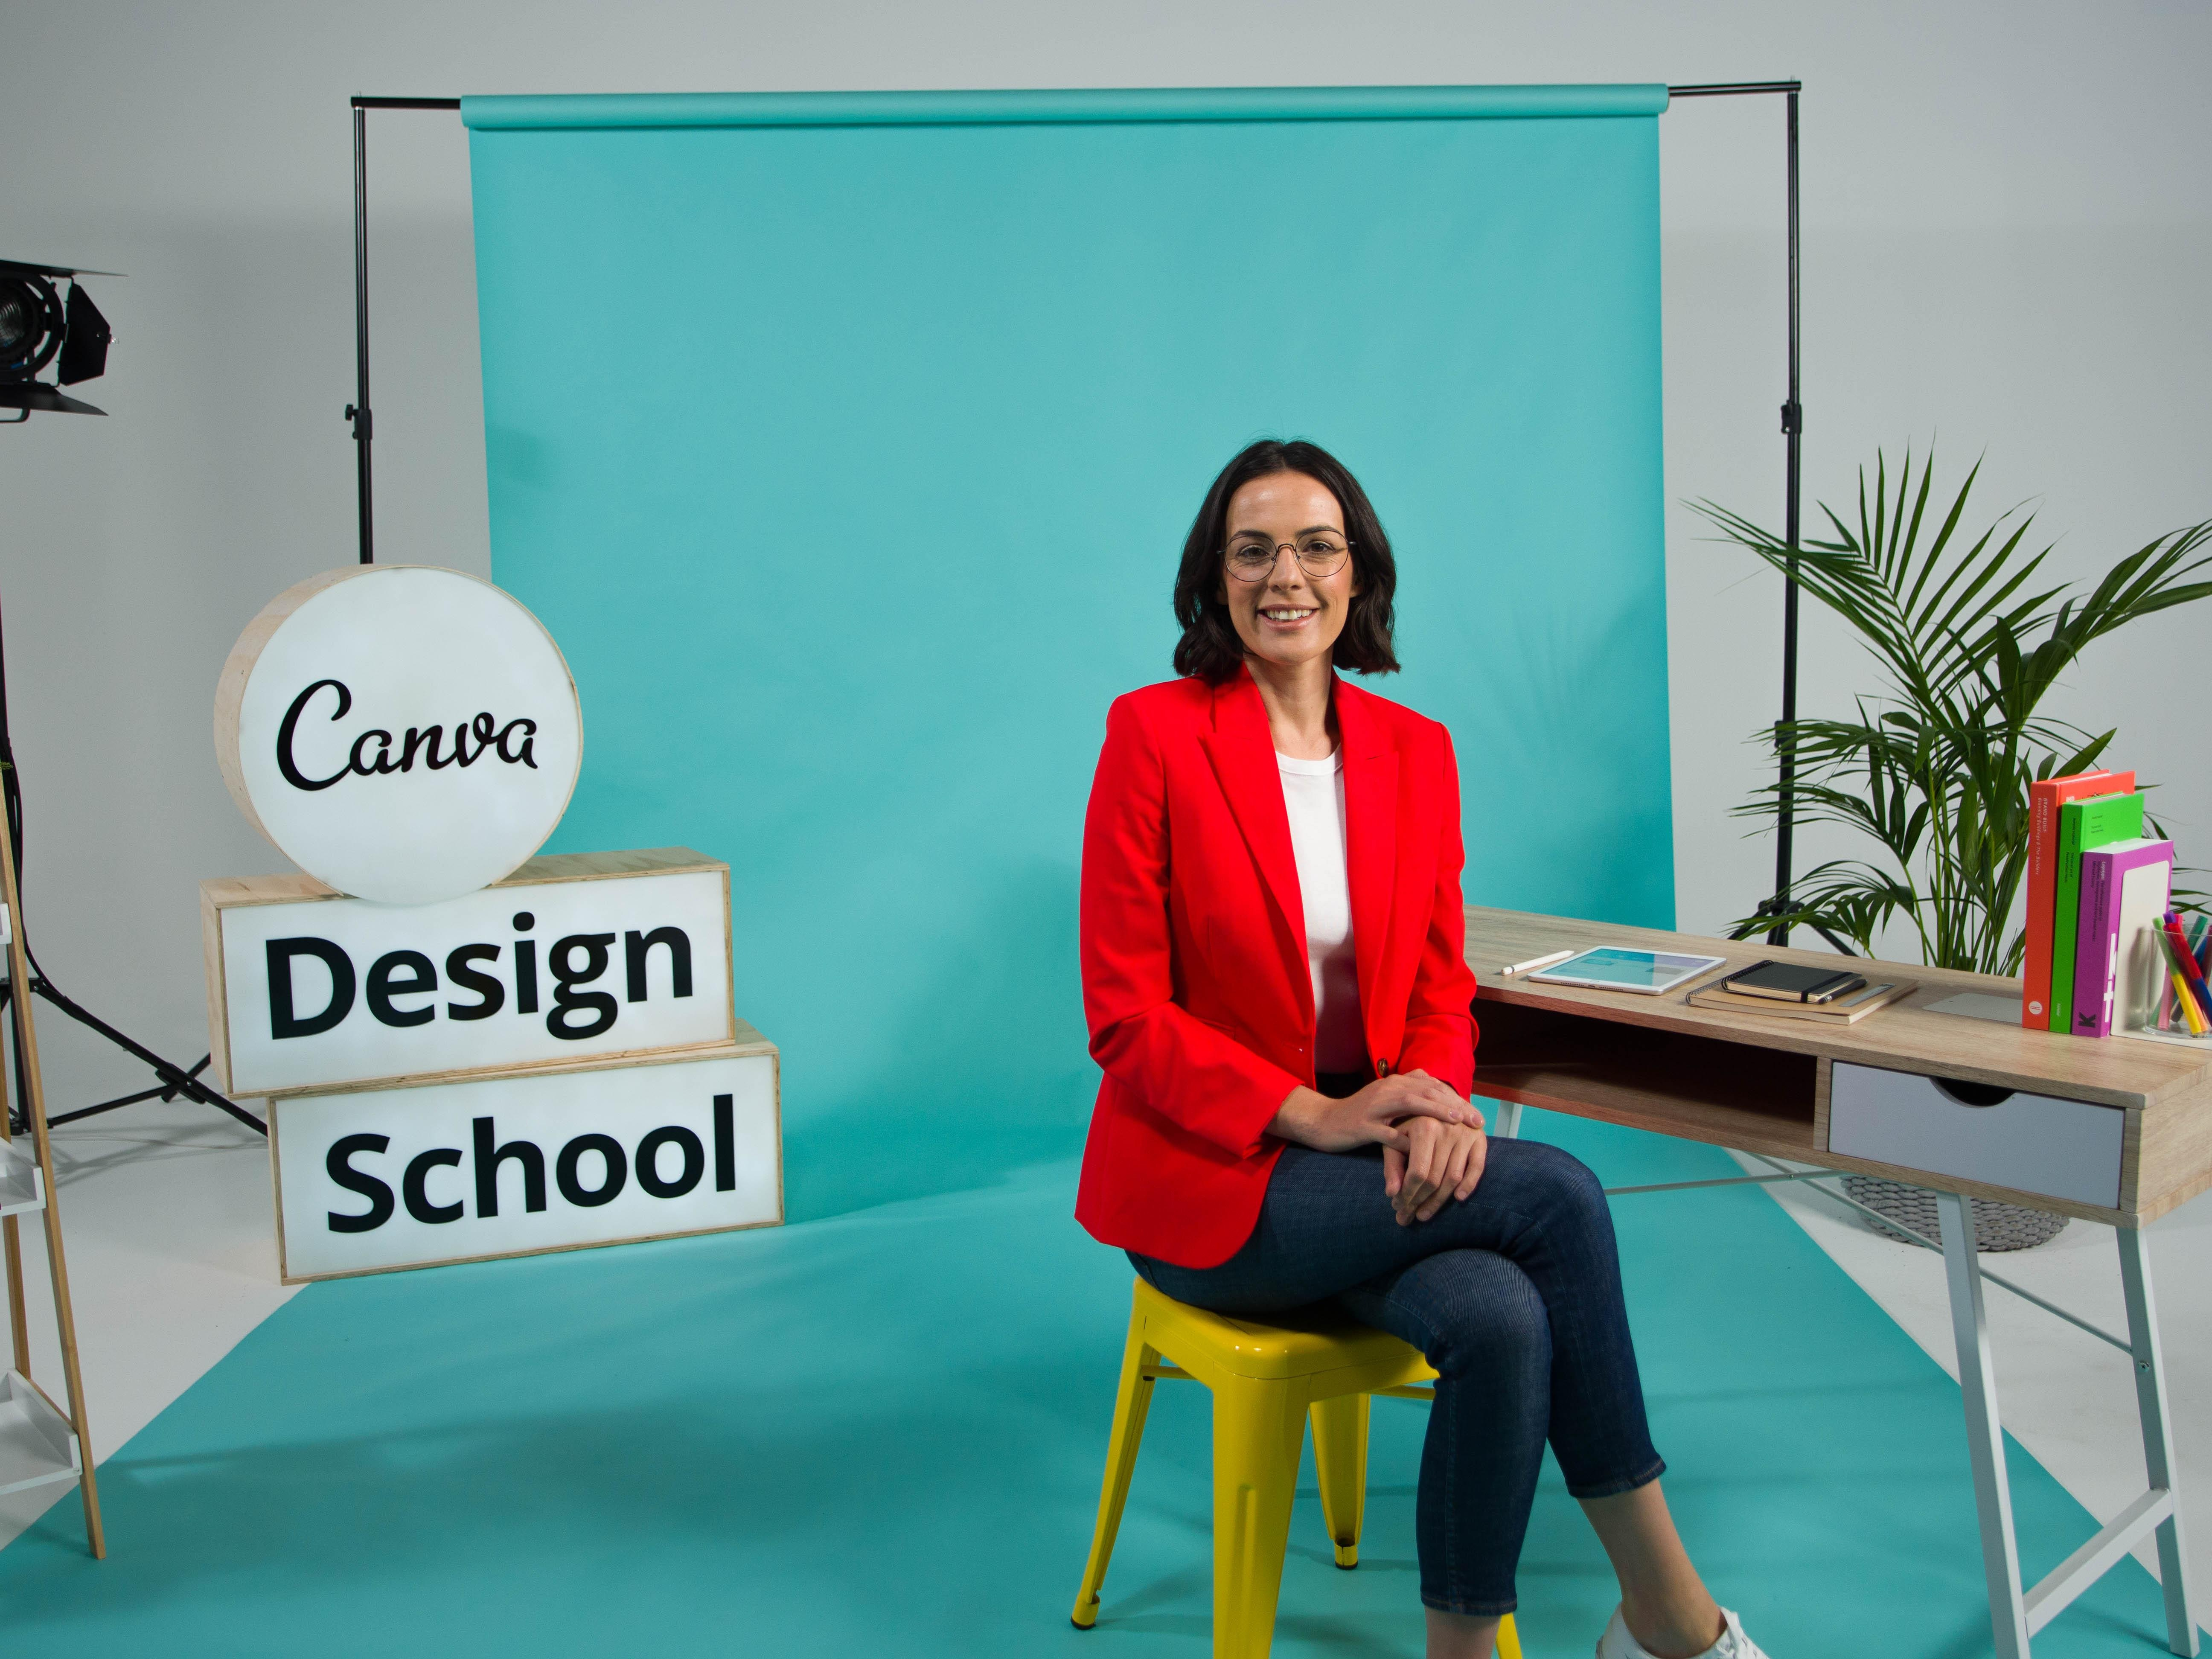 Canva Design School After Hours: Graphic Design Foundations